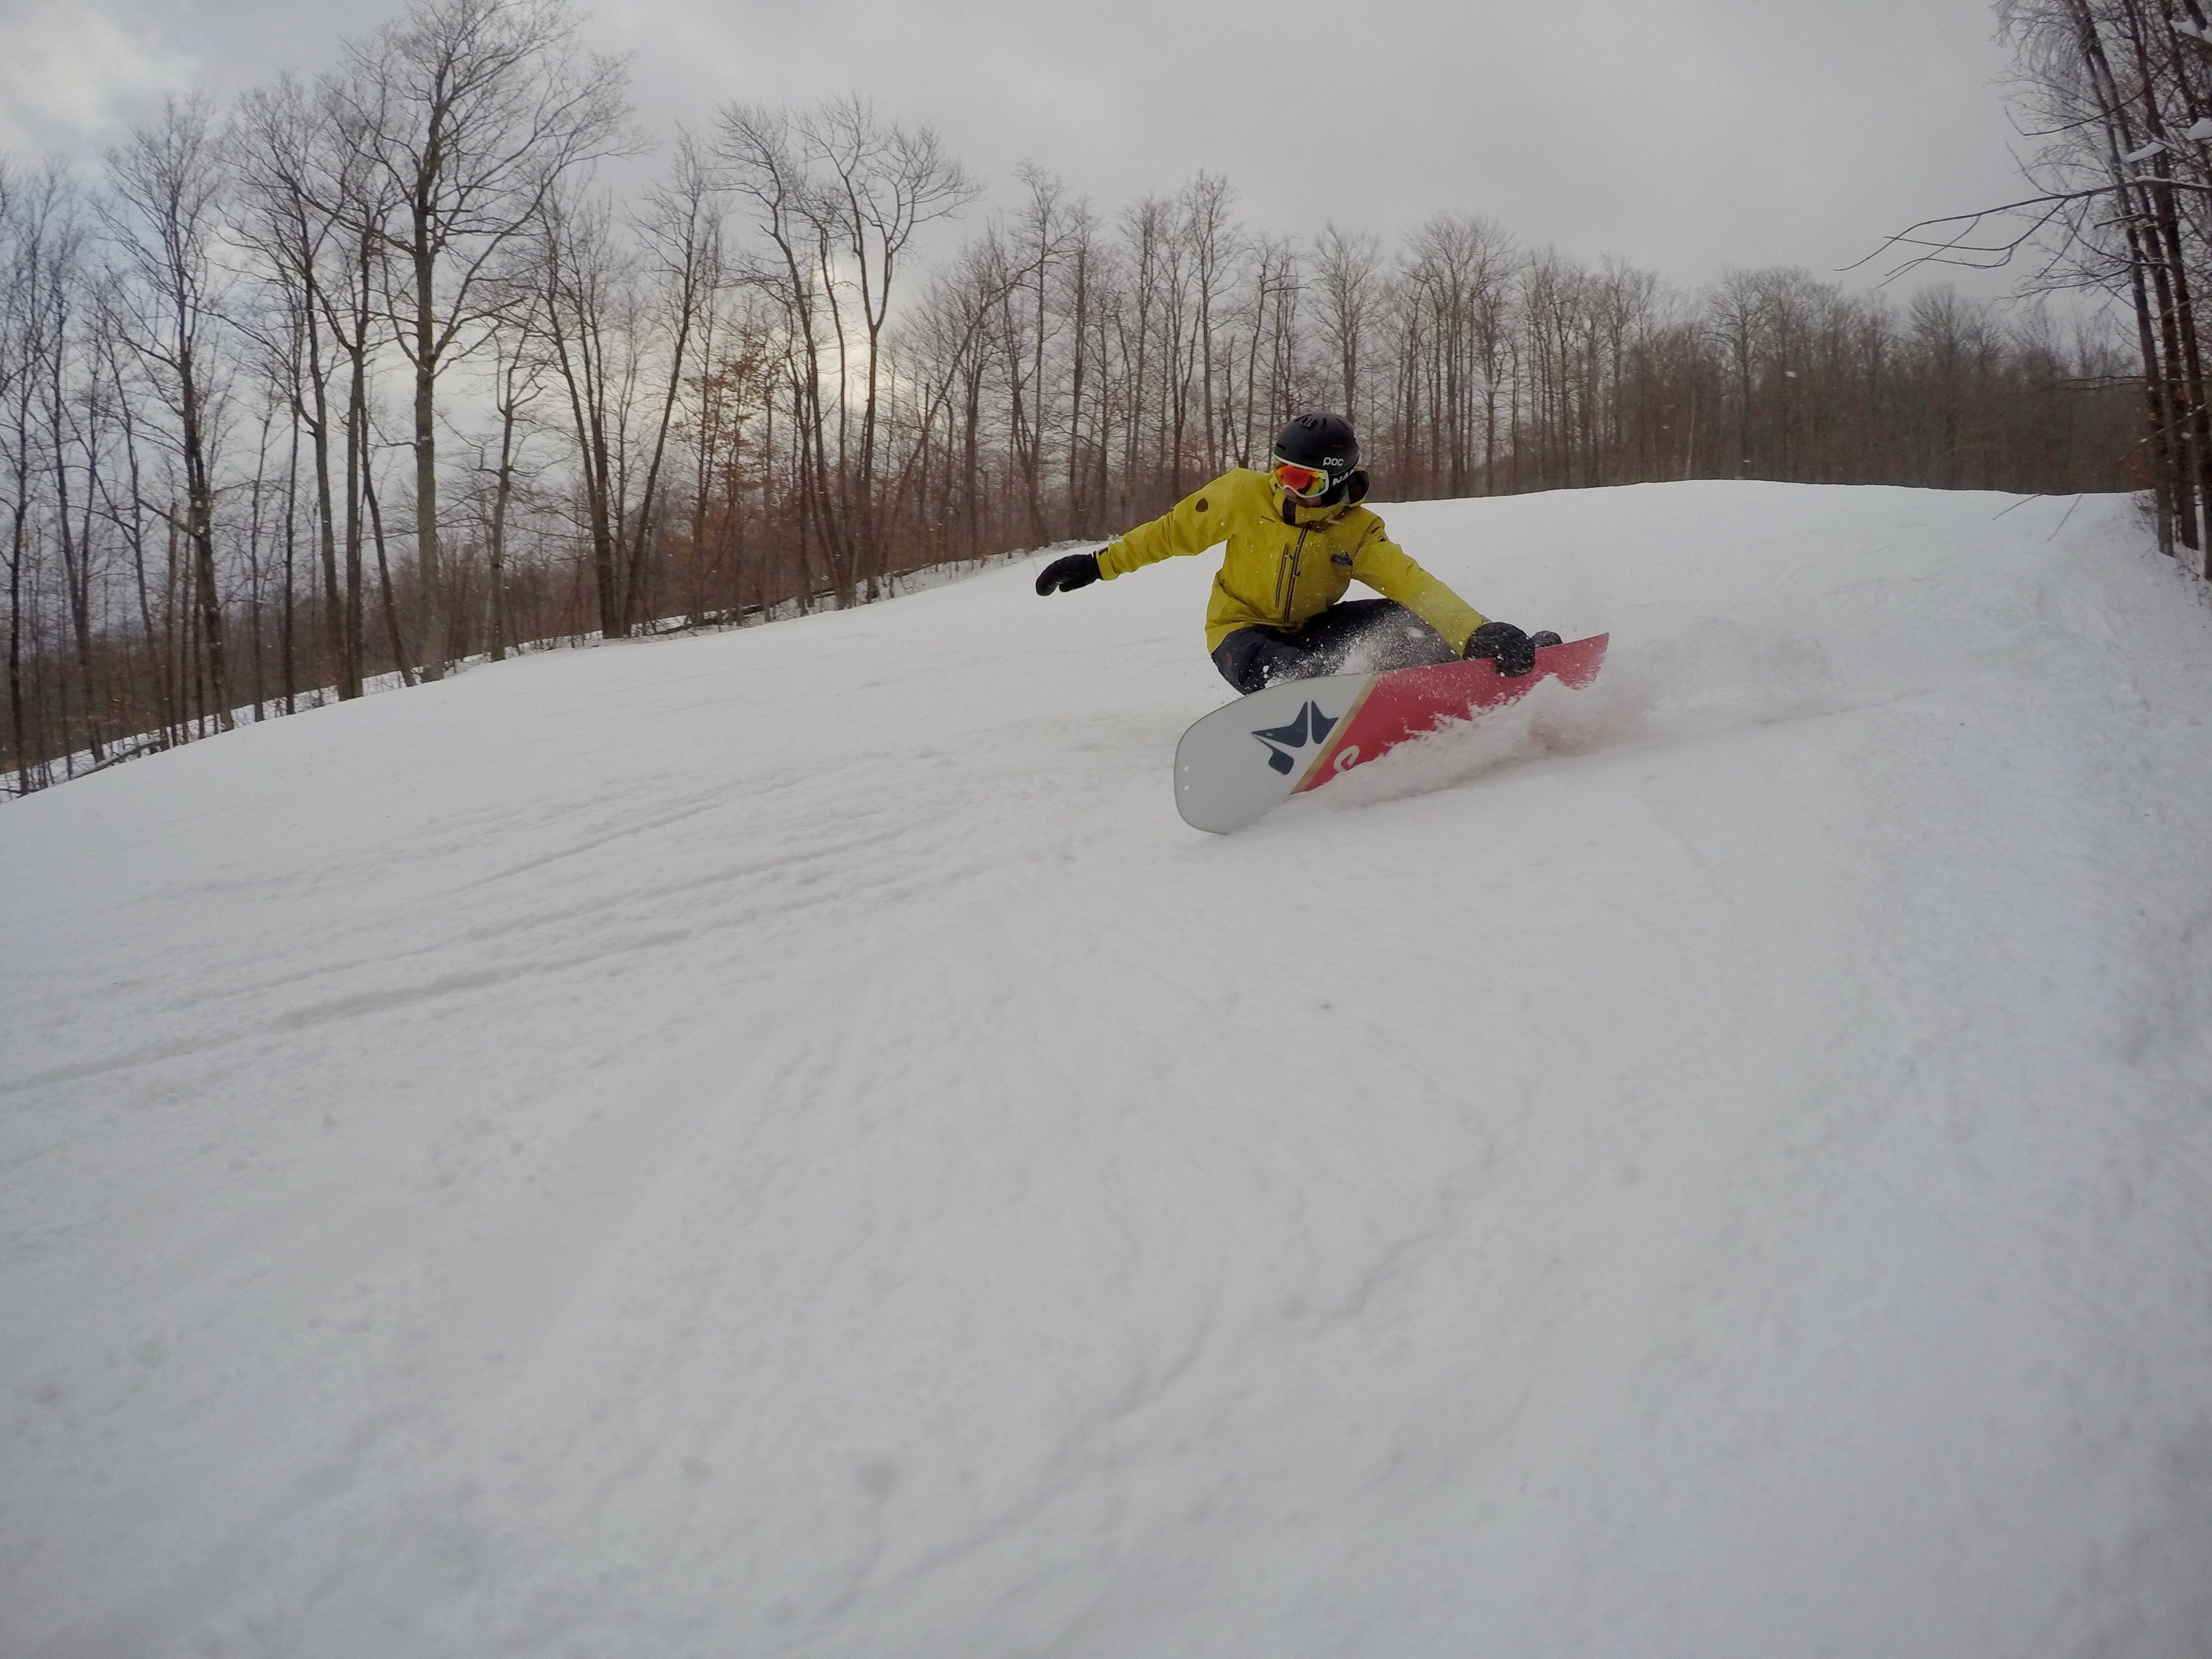 Snurfer x Rome Powder Division LTD 148 At Okemo Mountain